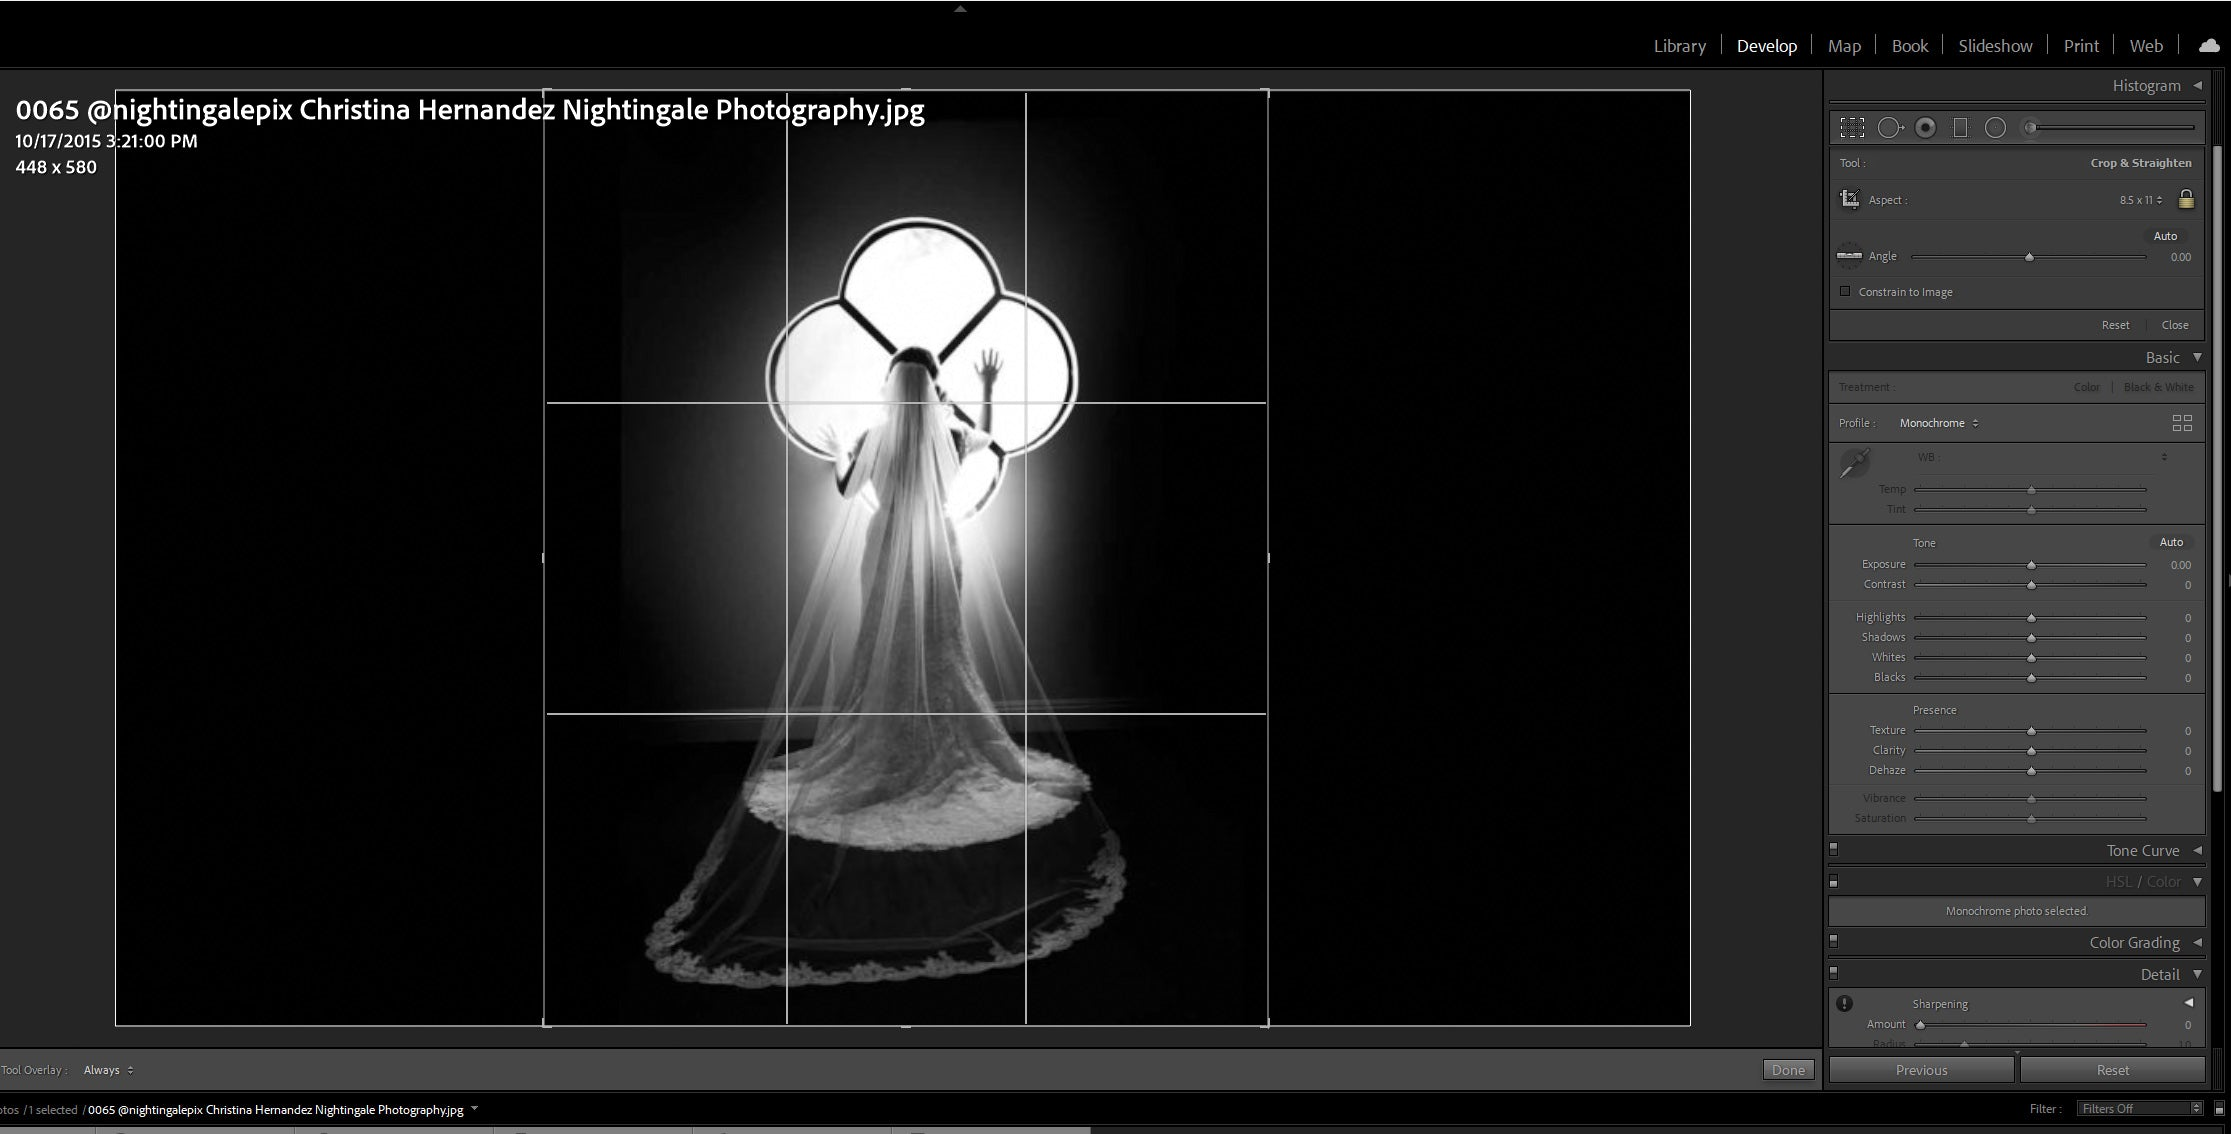 Changing the aspect ratio of an image in Lightroom